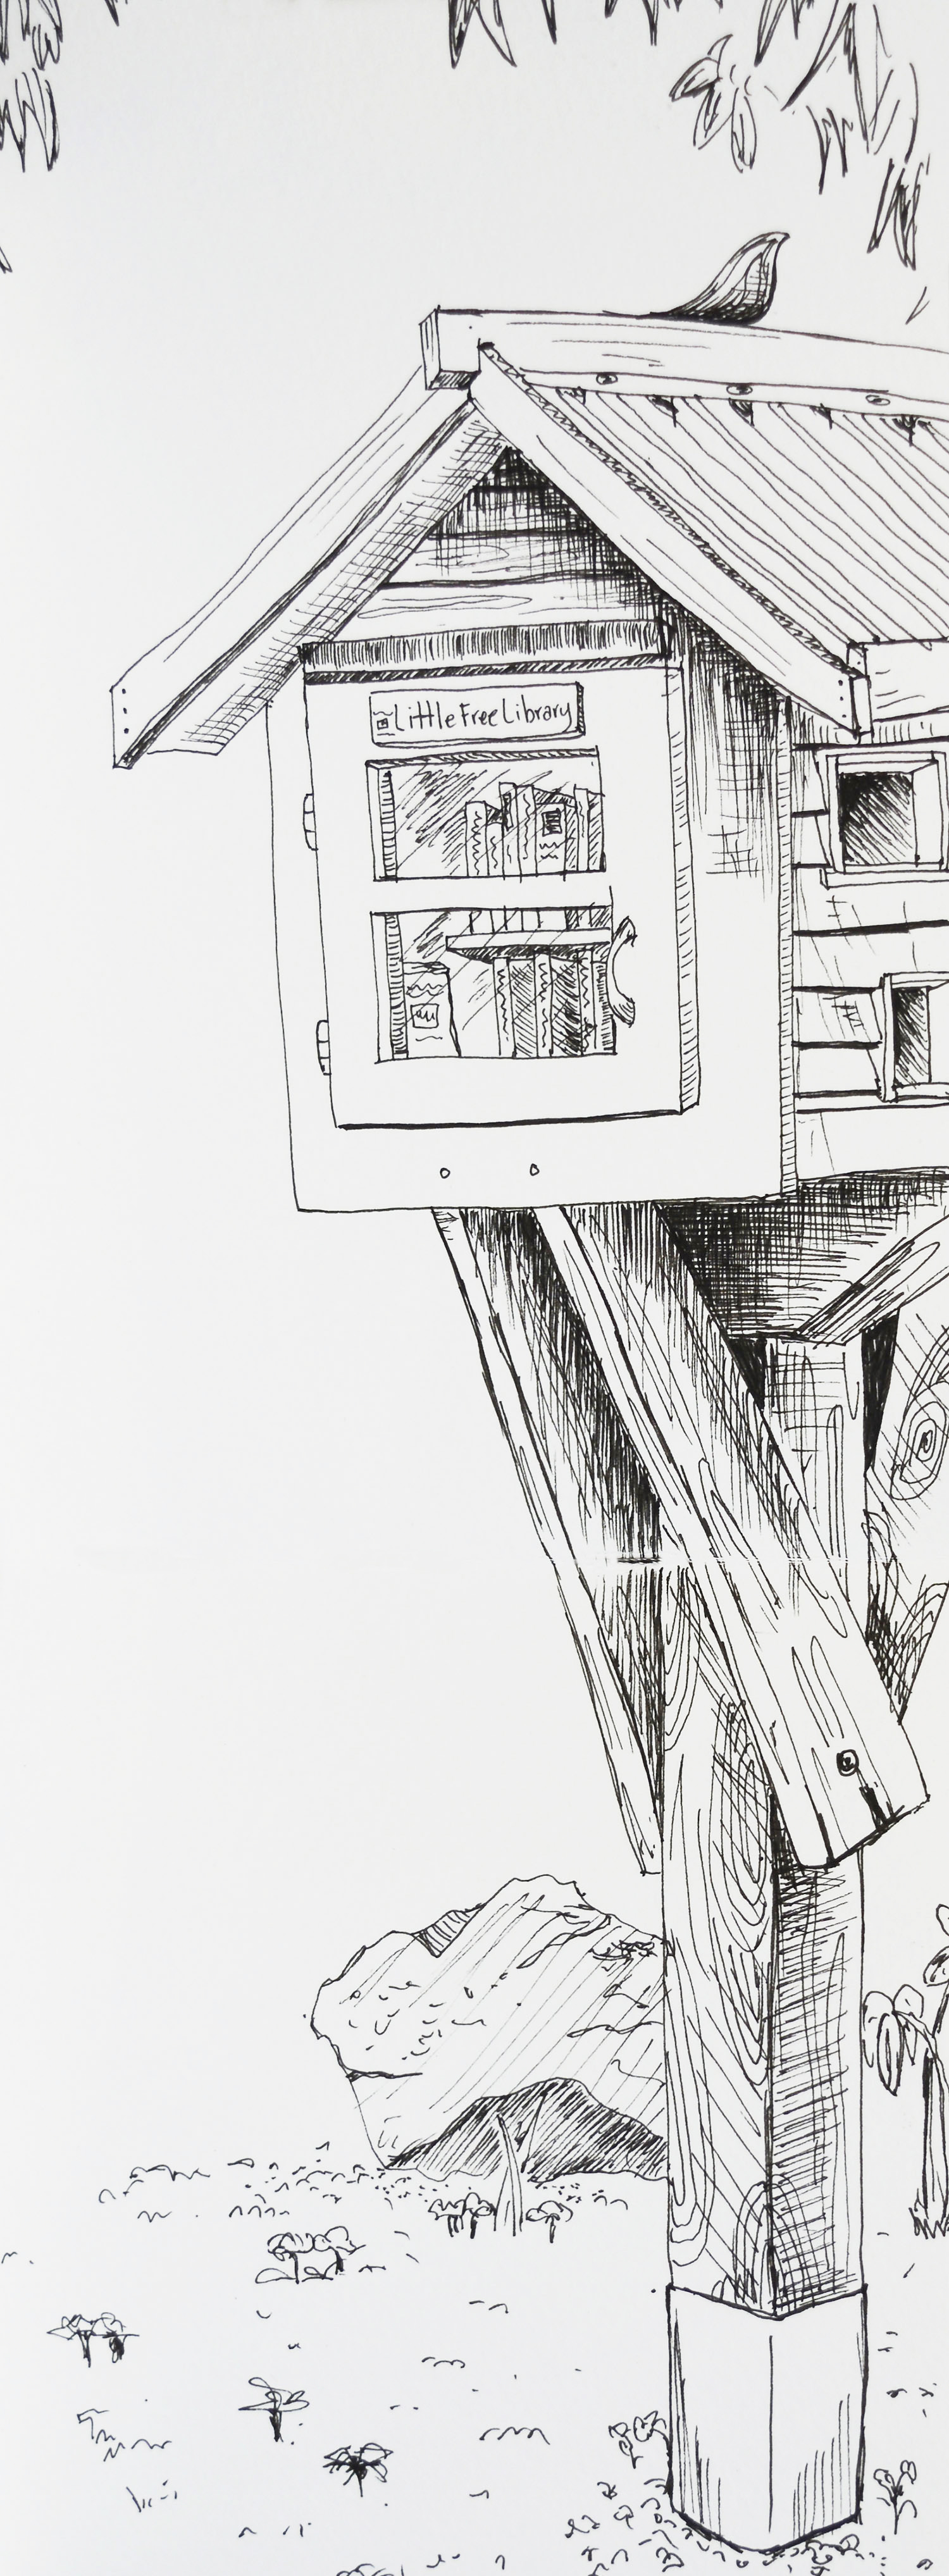 Cracked open a brand new Micron 05 pen on a summer afternoon on Granville Island, Vancouver to draw the Little Free Library.